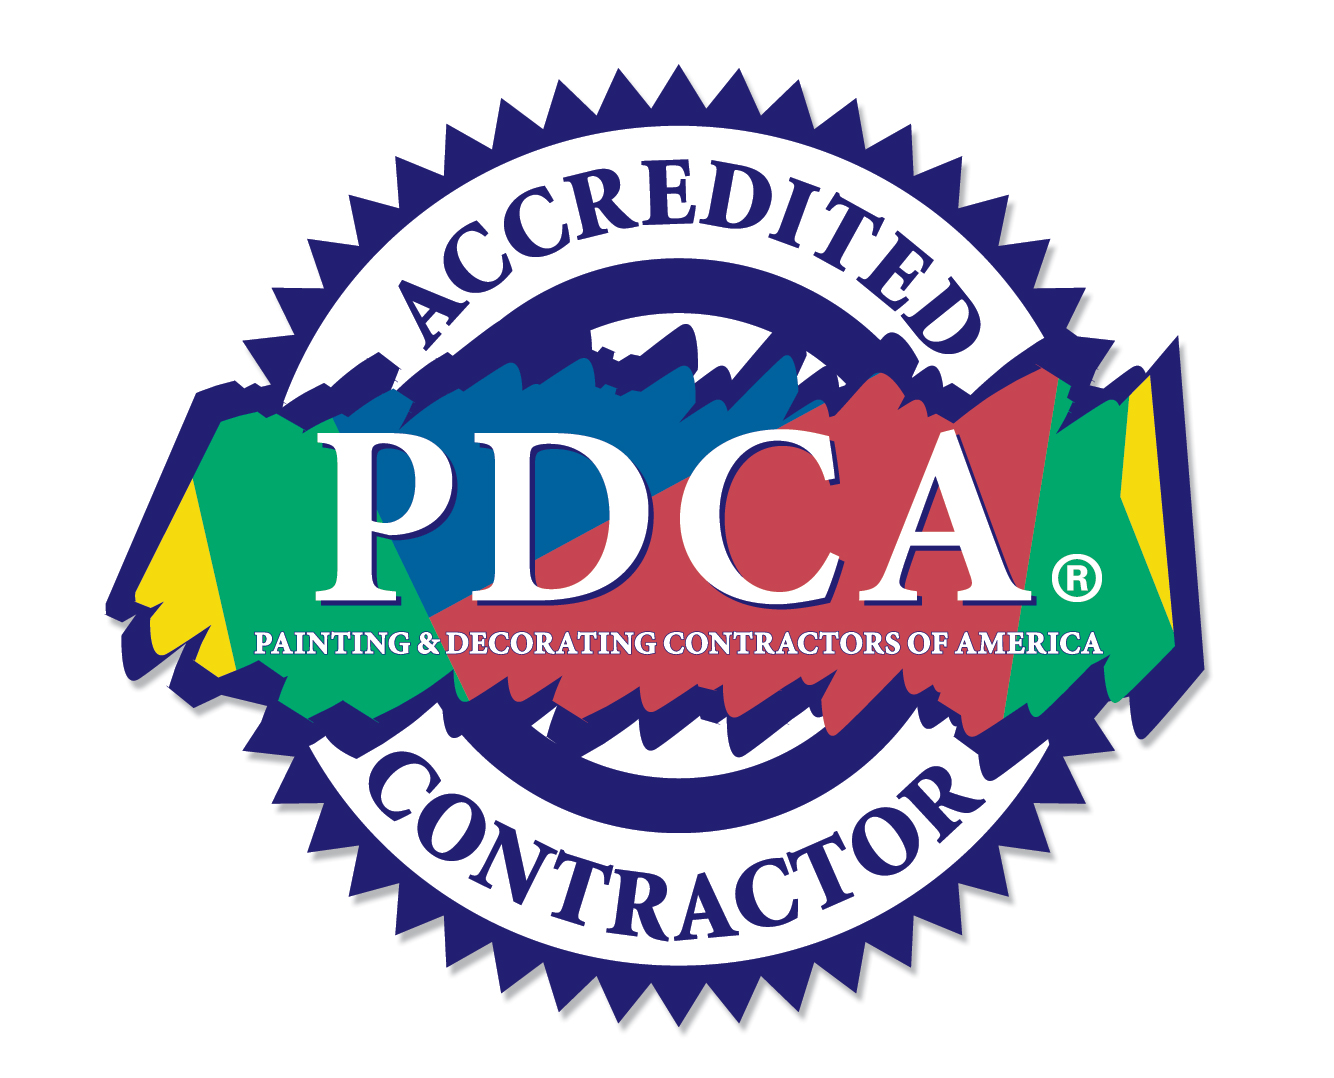 PDCA Painting and Decorating Contractors of America